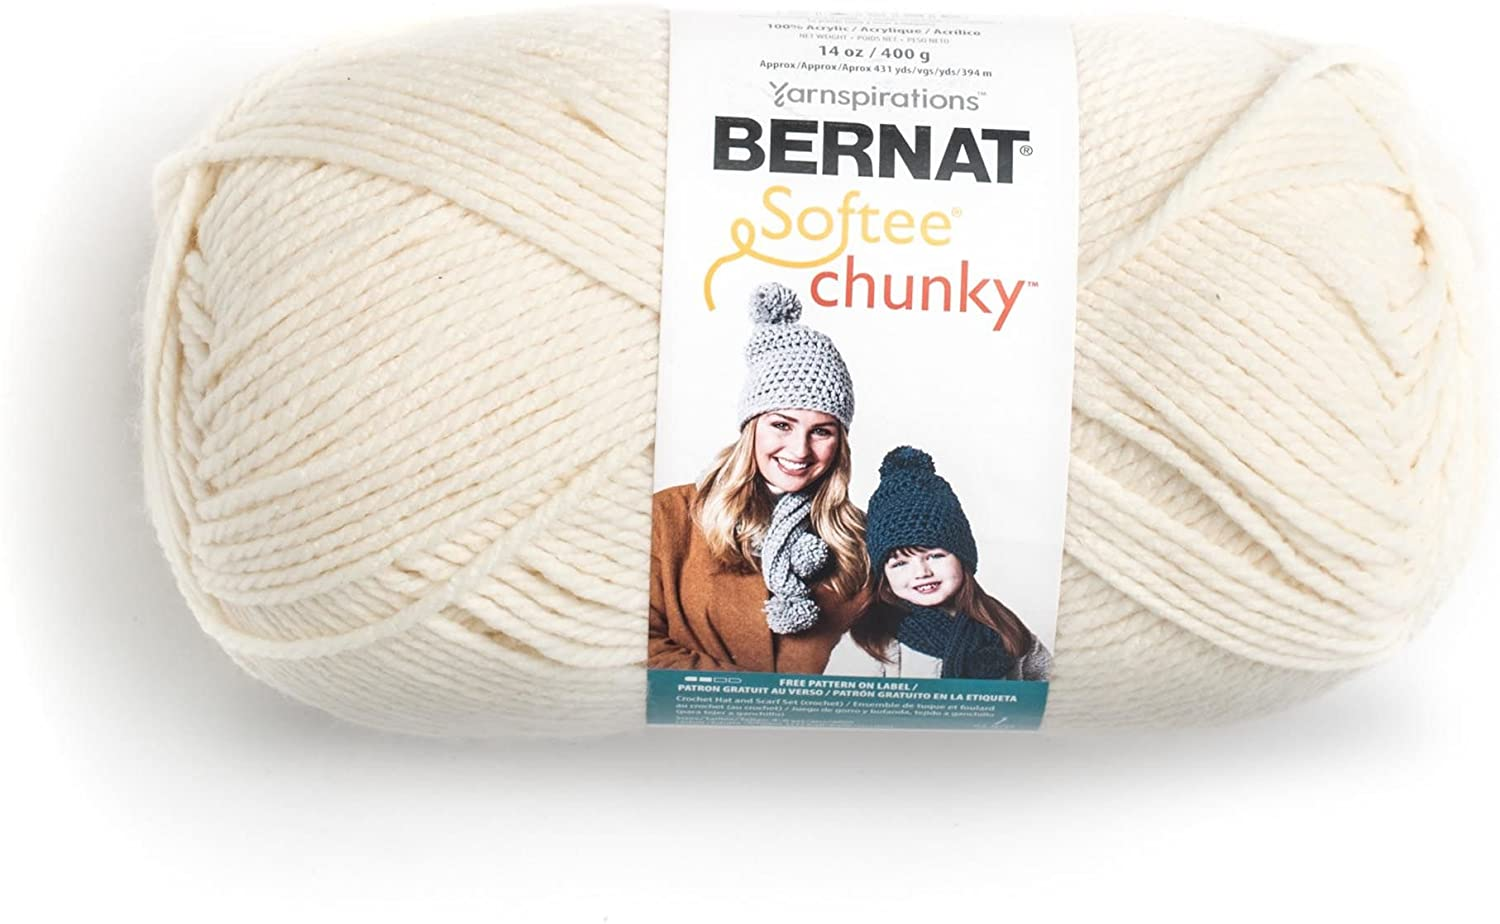 Bernat 16113030008 Big Ball Chunky Solid Yarn - (6) Super Bulky Gauge 100% Acrylic - 14 oz - Cream -  Machine Wash & Dry